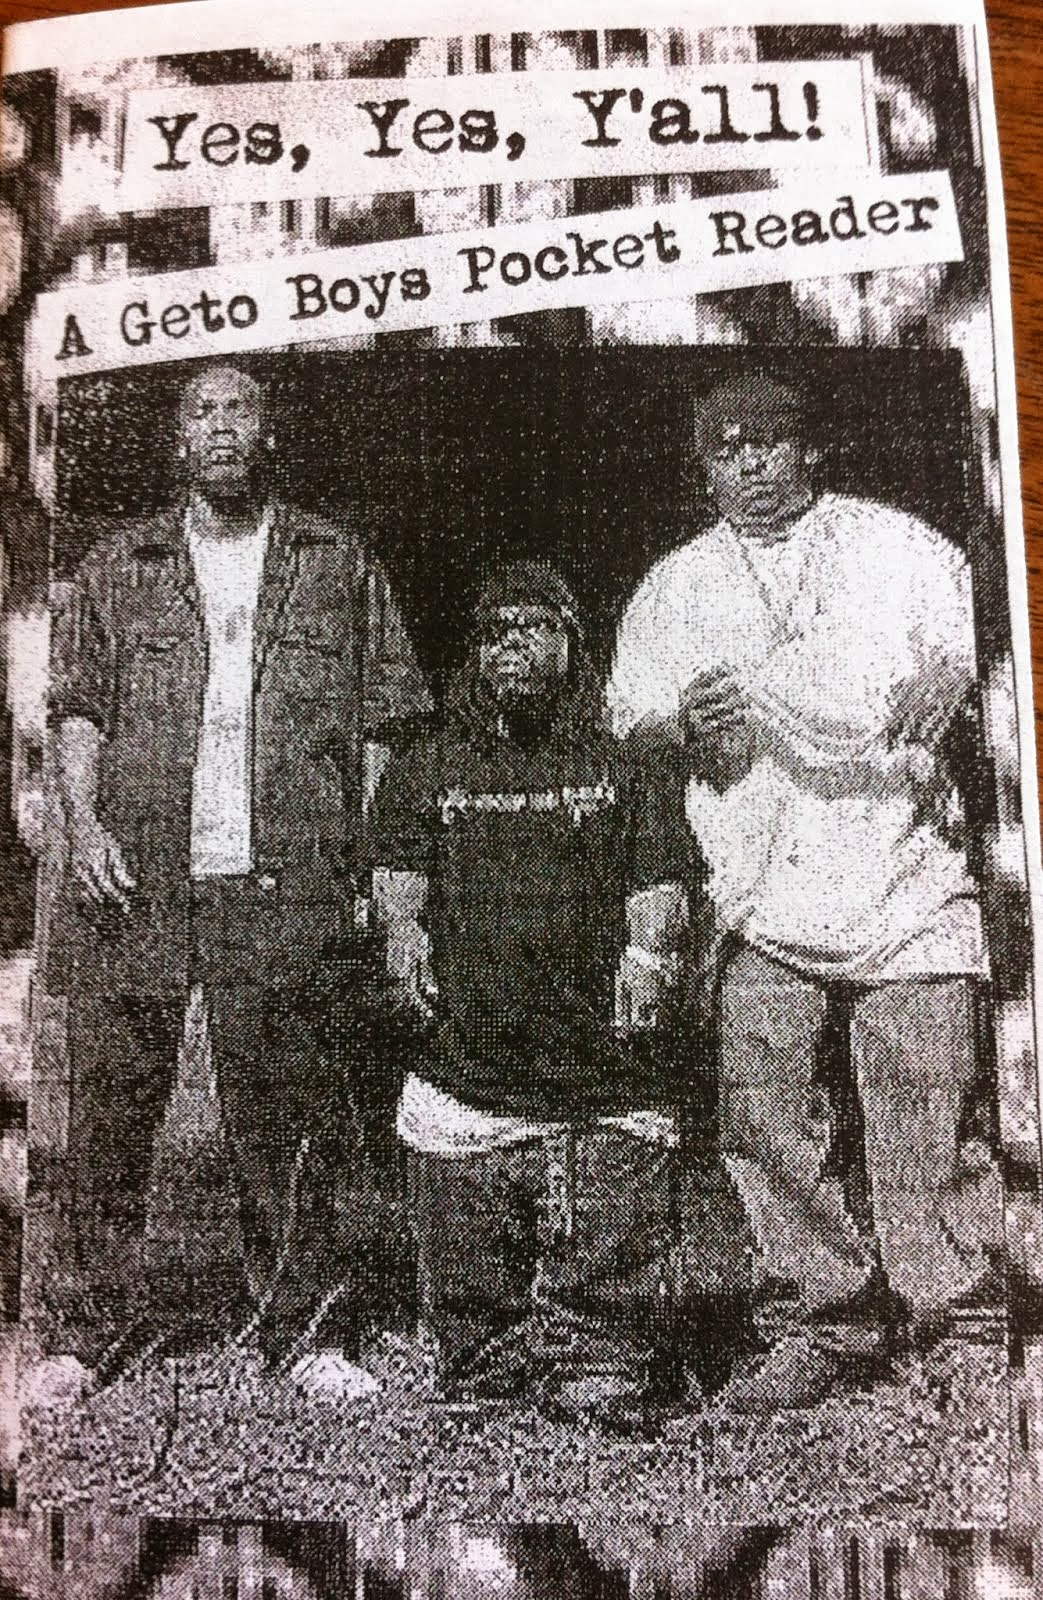 A Geto Boys Pocket Reader